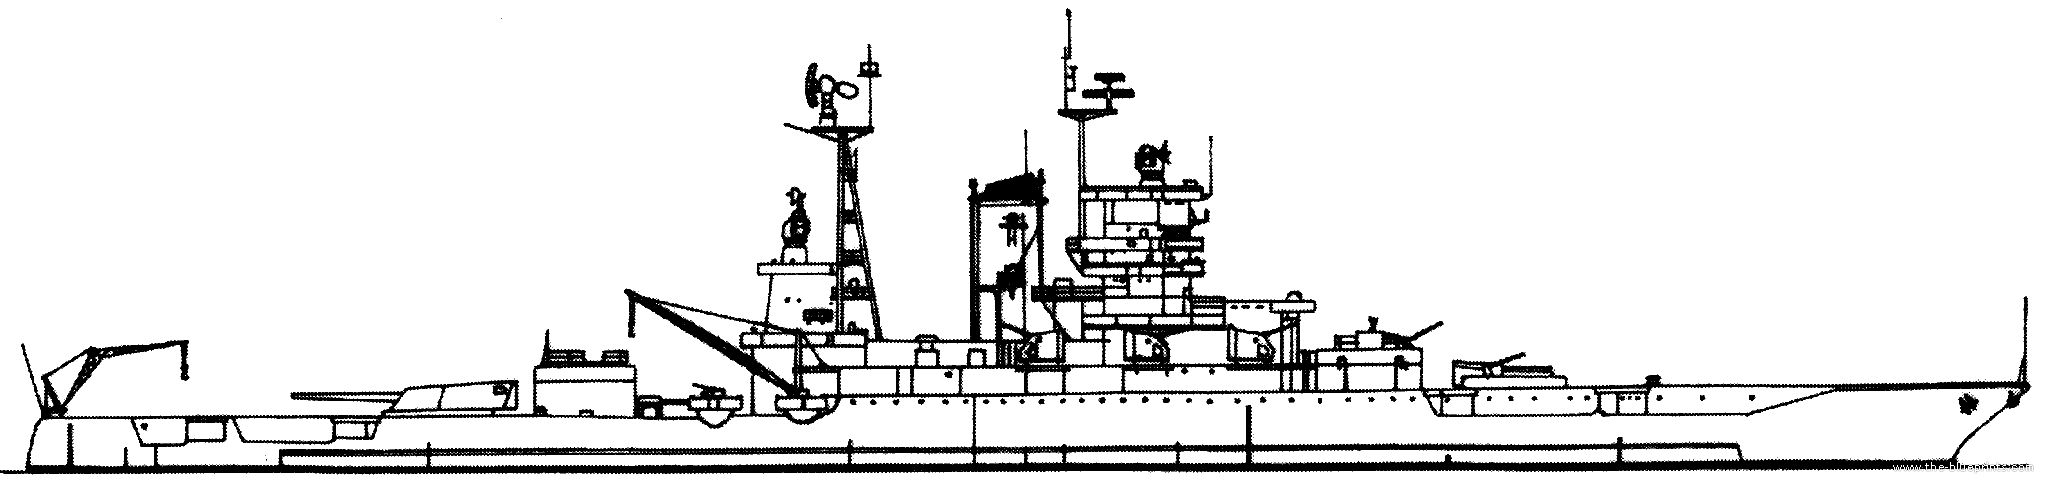 BB41 in 1949